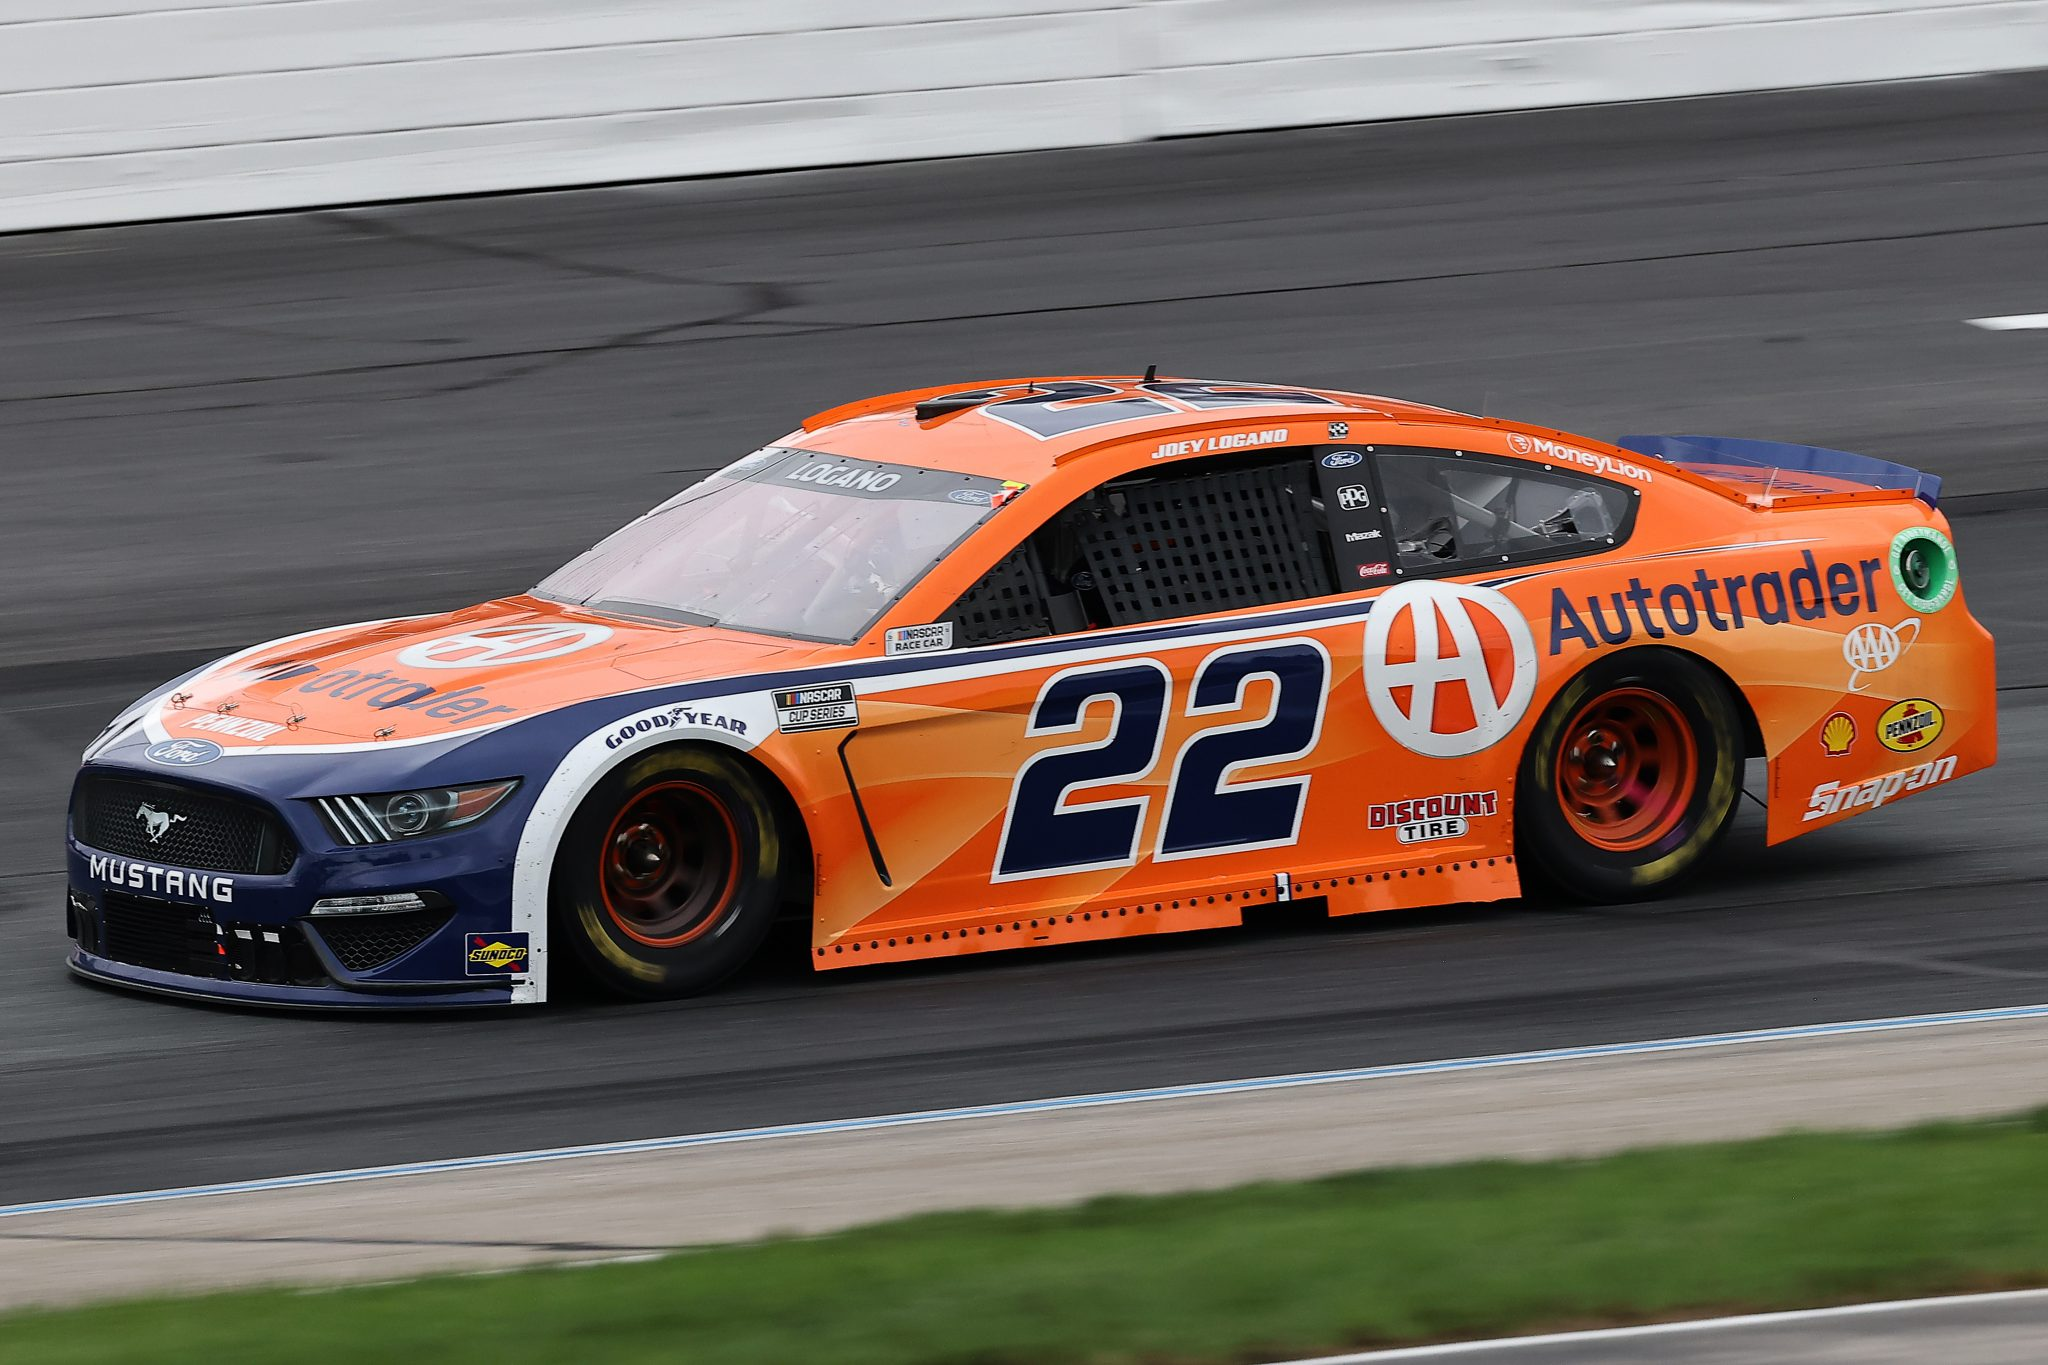 LOUDON, NEW HAMPSHIRE - JULY 18: Joey Logano, driver of the #22 Autotrader Ford,  drives during the NASCAR Cup Series Foxwoods Resort Casino 301 at New Hampshire Motor Speedway on July 18, 2021 in Loudon, New Hampshire. (Photo by James Gilbert/Getty Images) | Getty Images